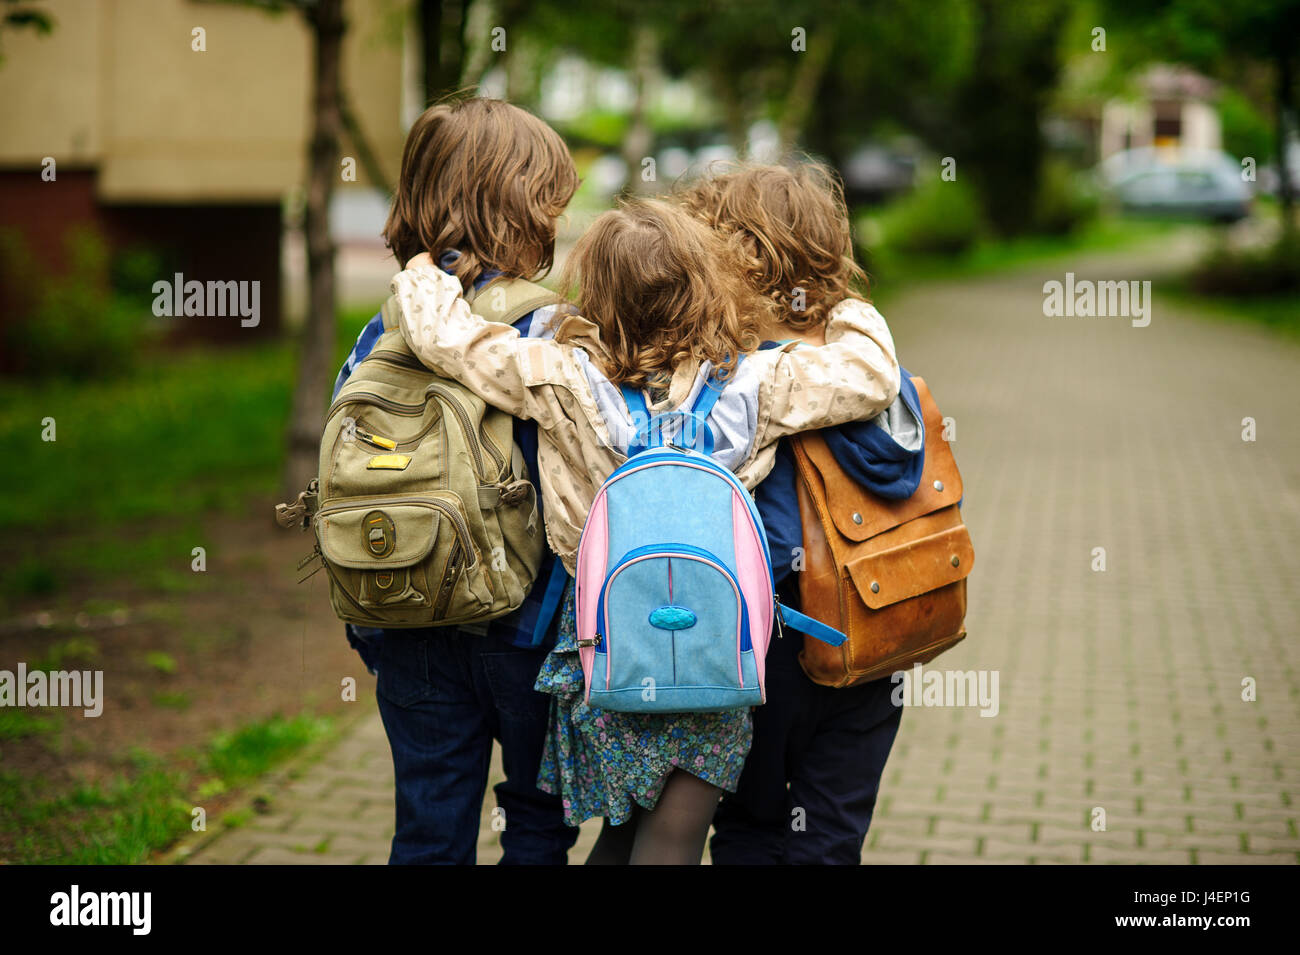 Three little school students go in an embrace to school. Children's friendship. - Stock Image